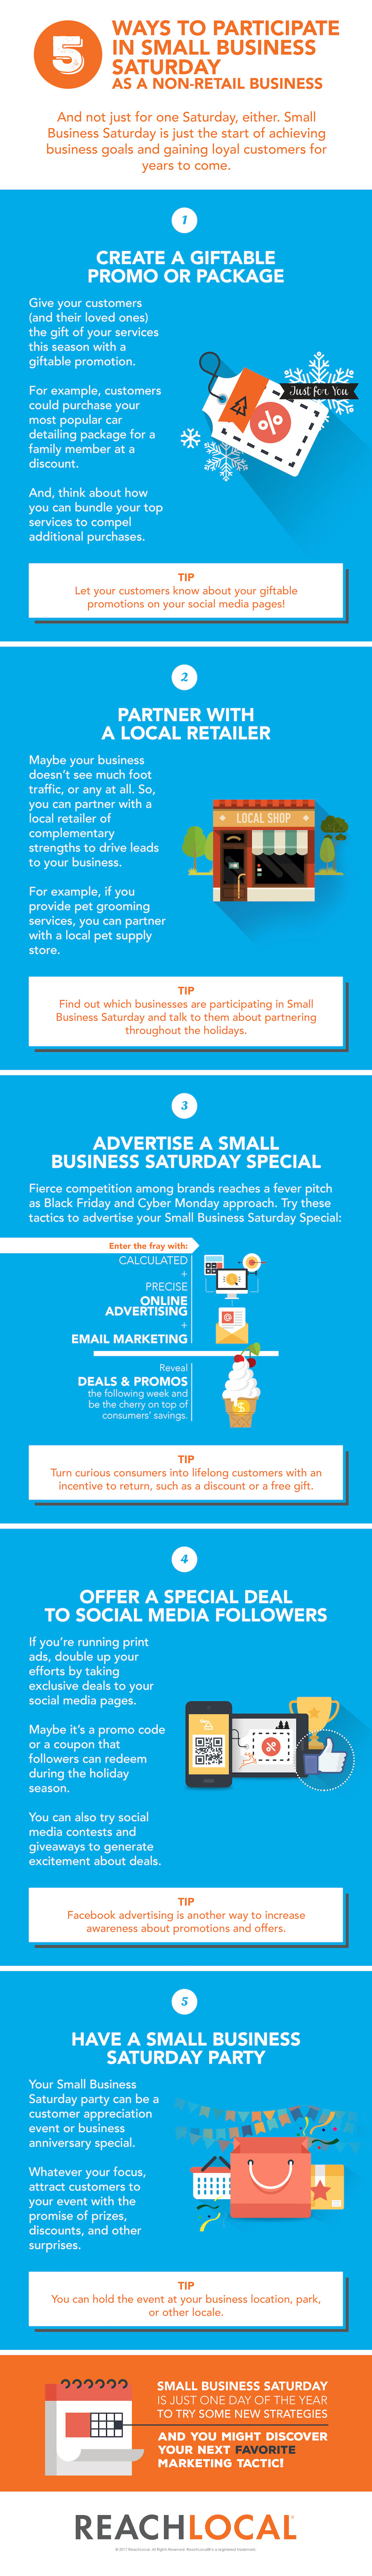 5 Ways for Non-Retailers to Get Involved in Small Business Saturday